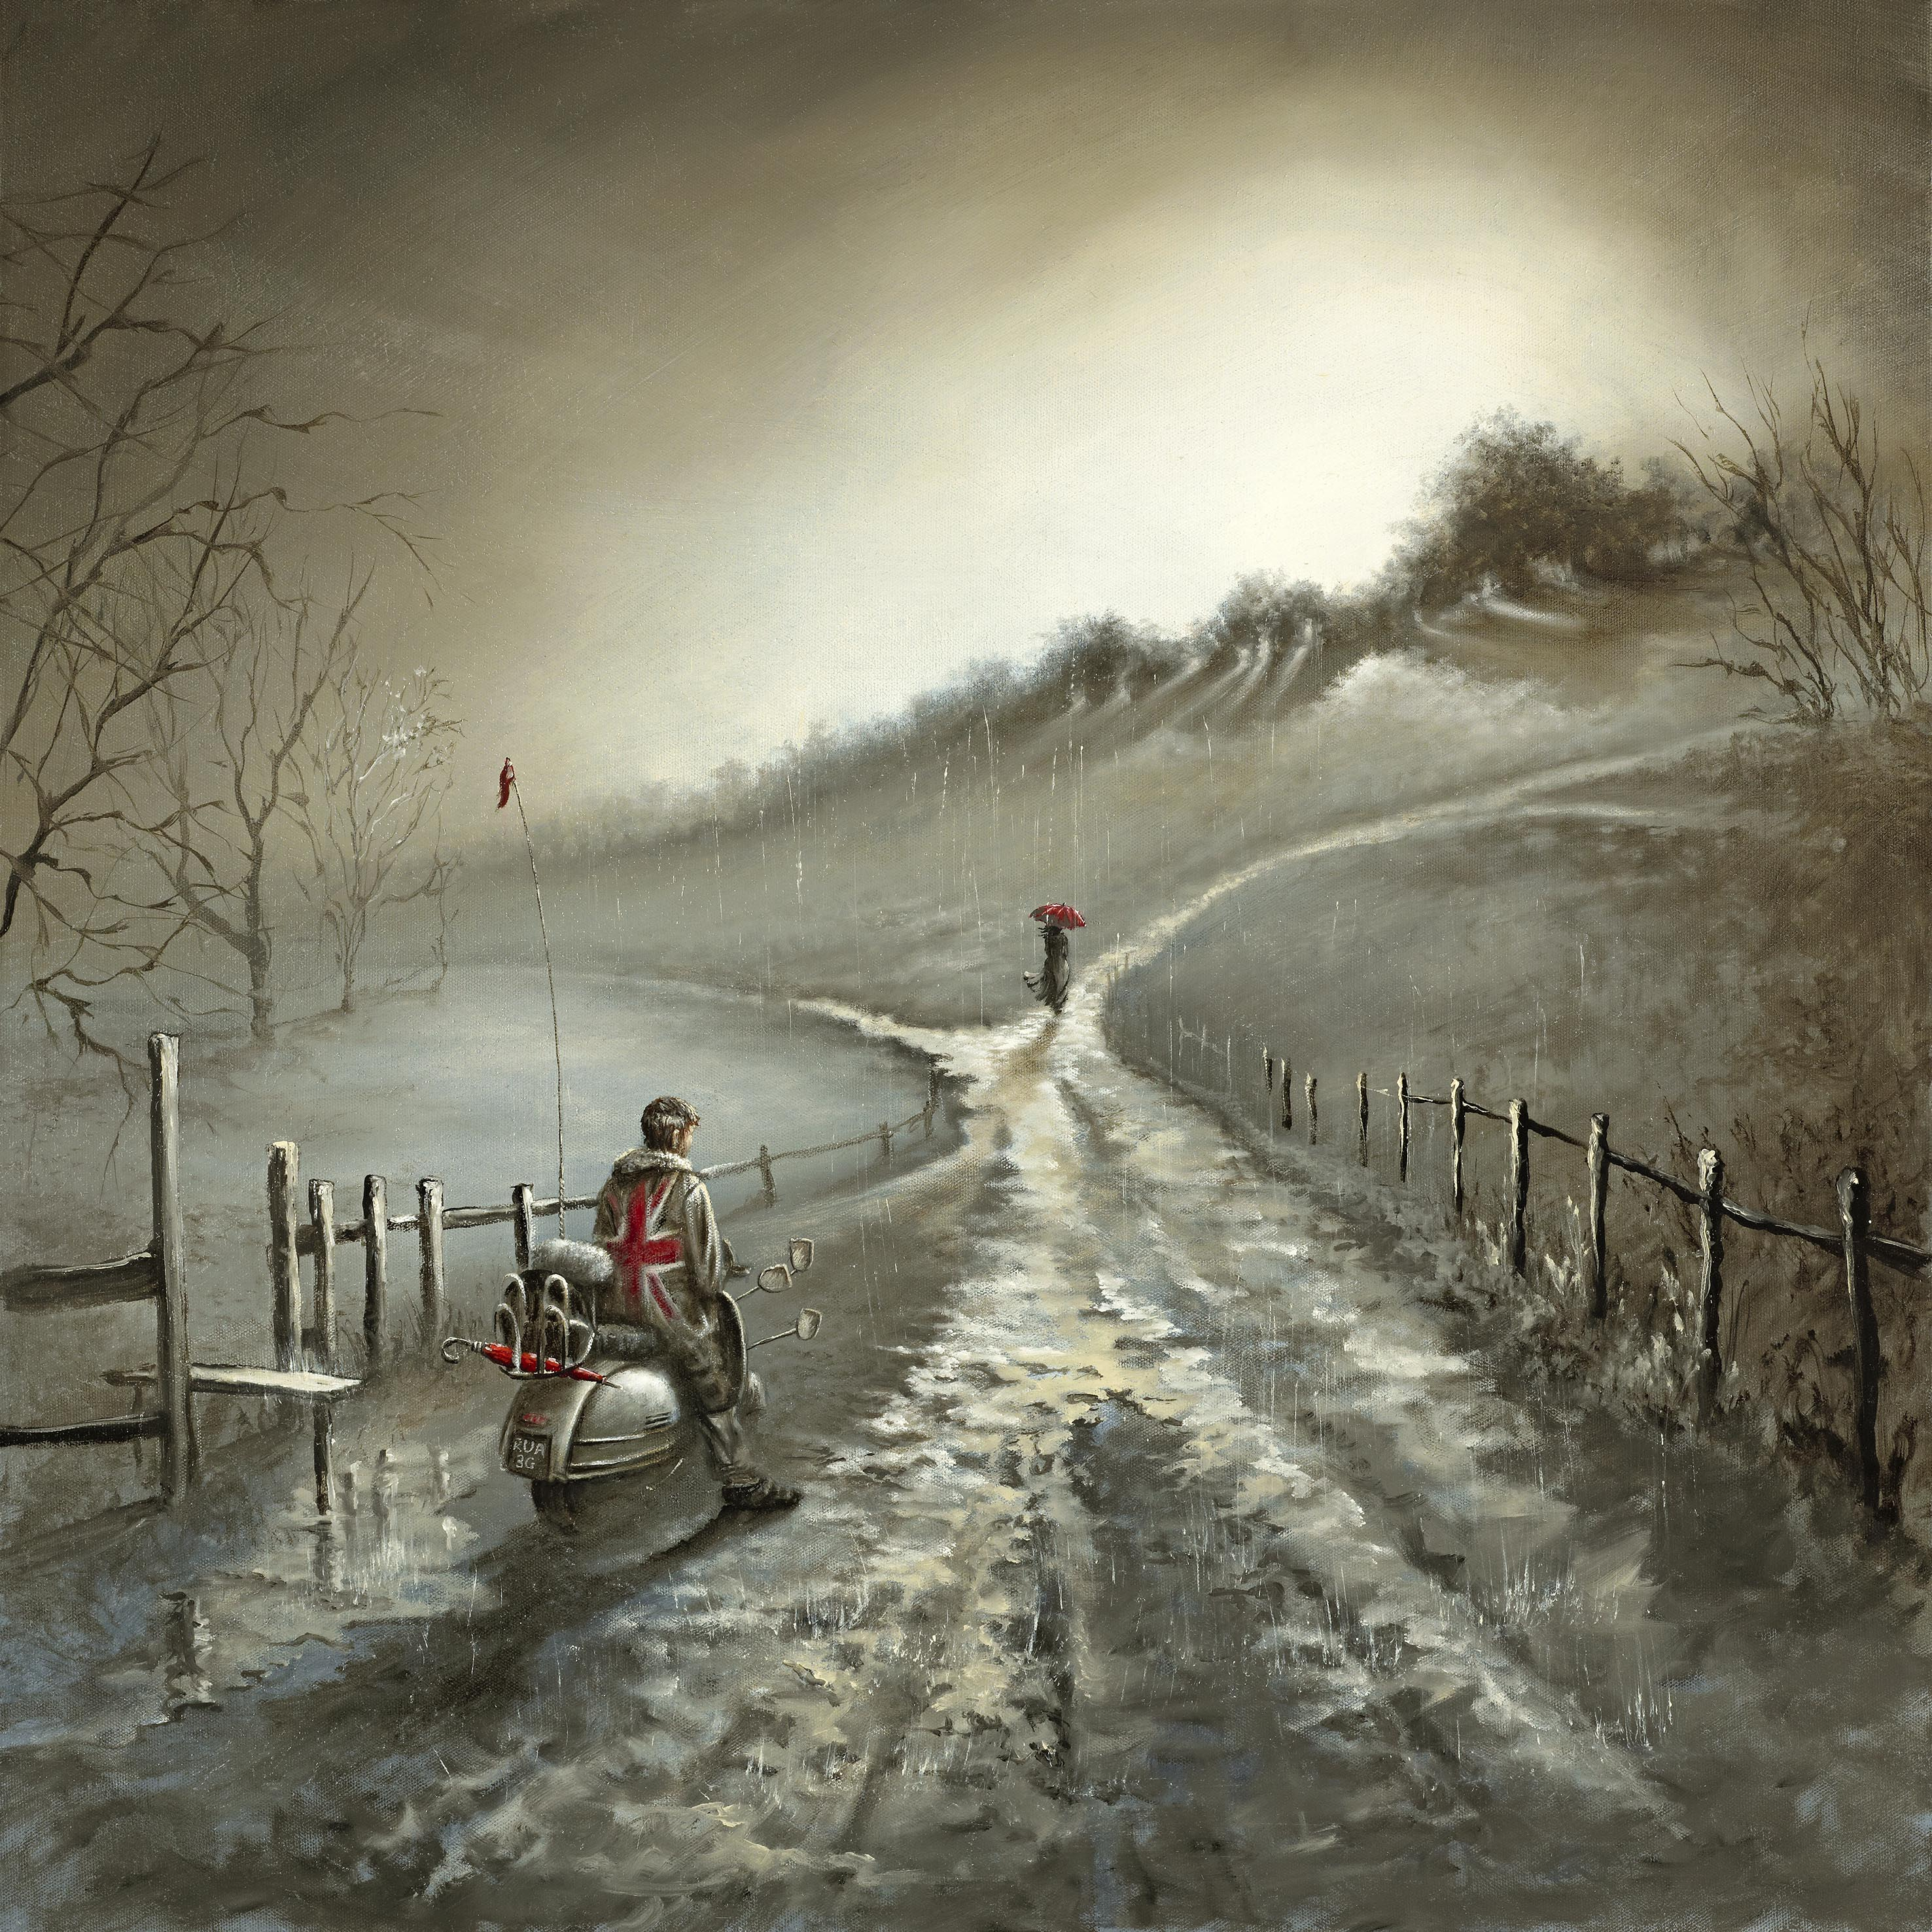 State of the Union by Bob Barker